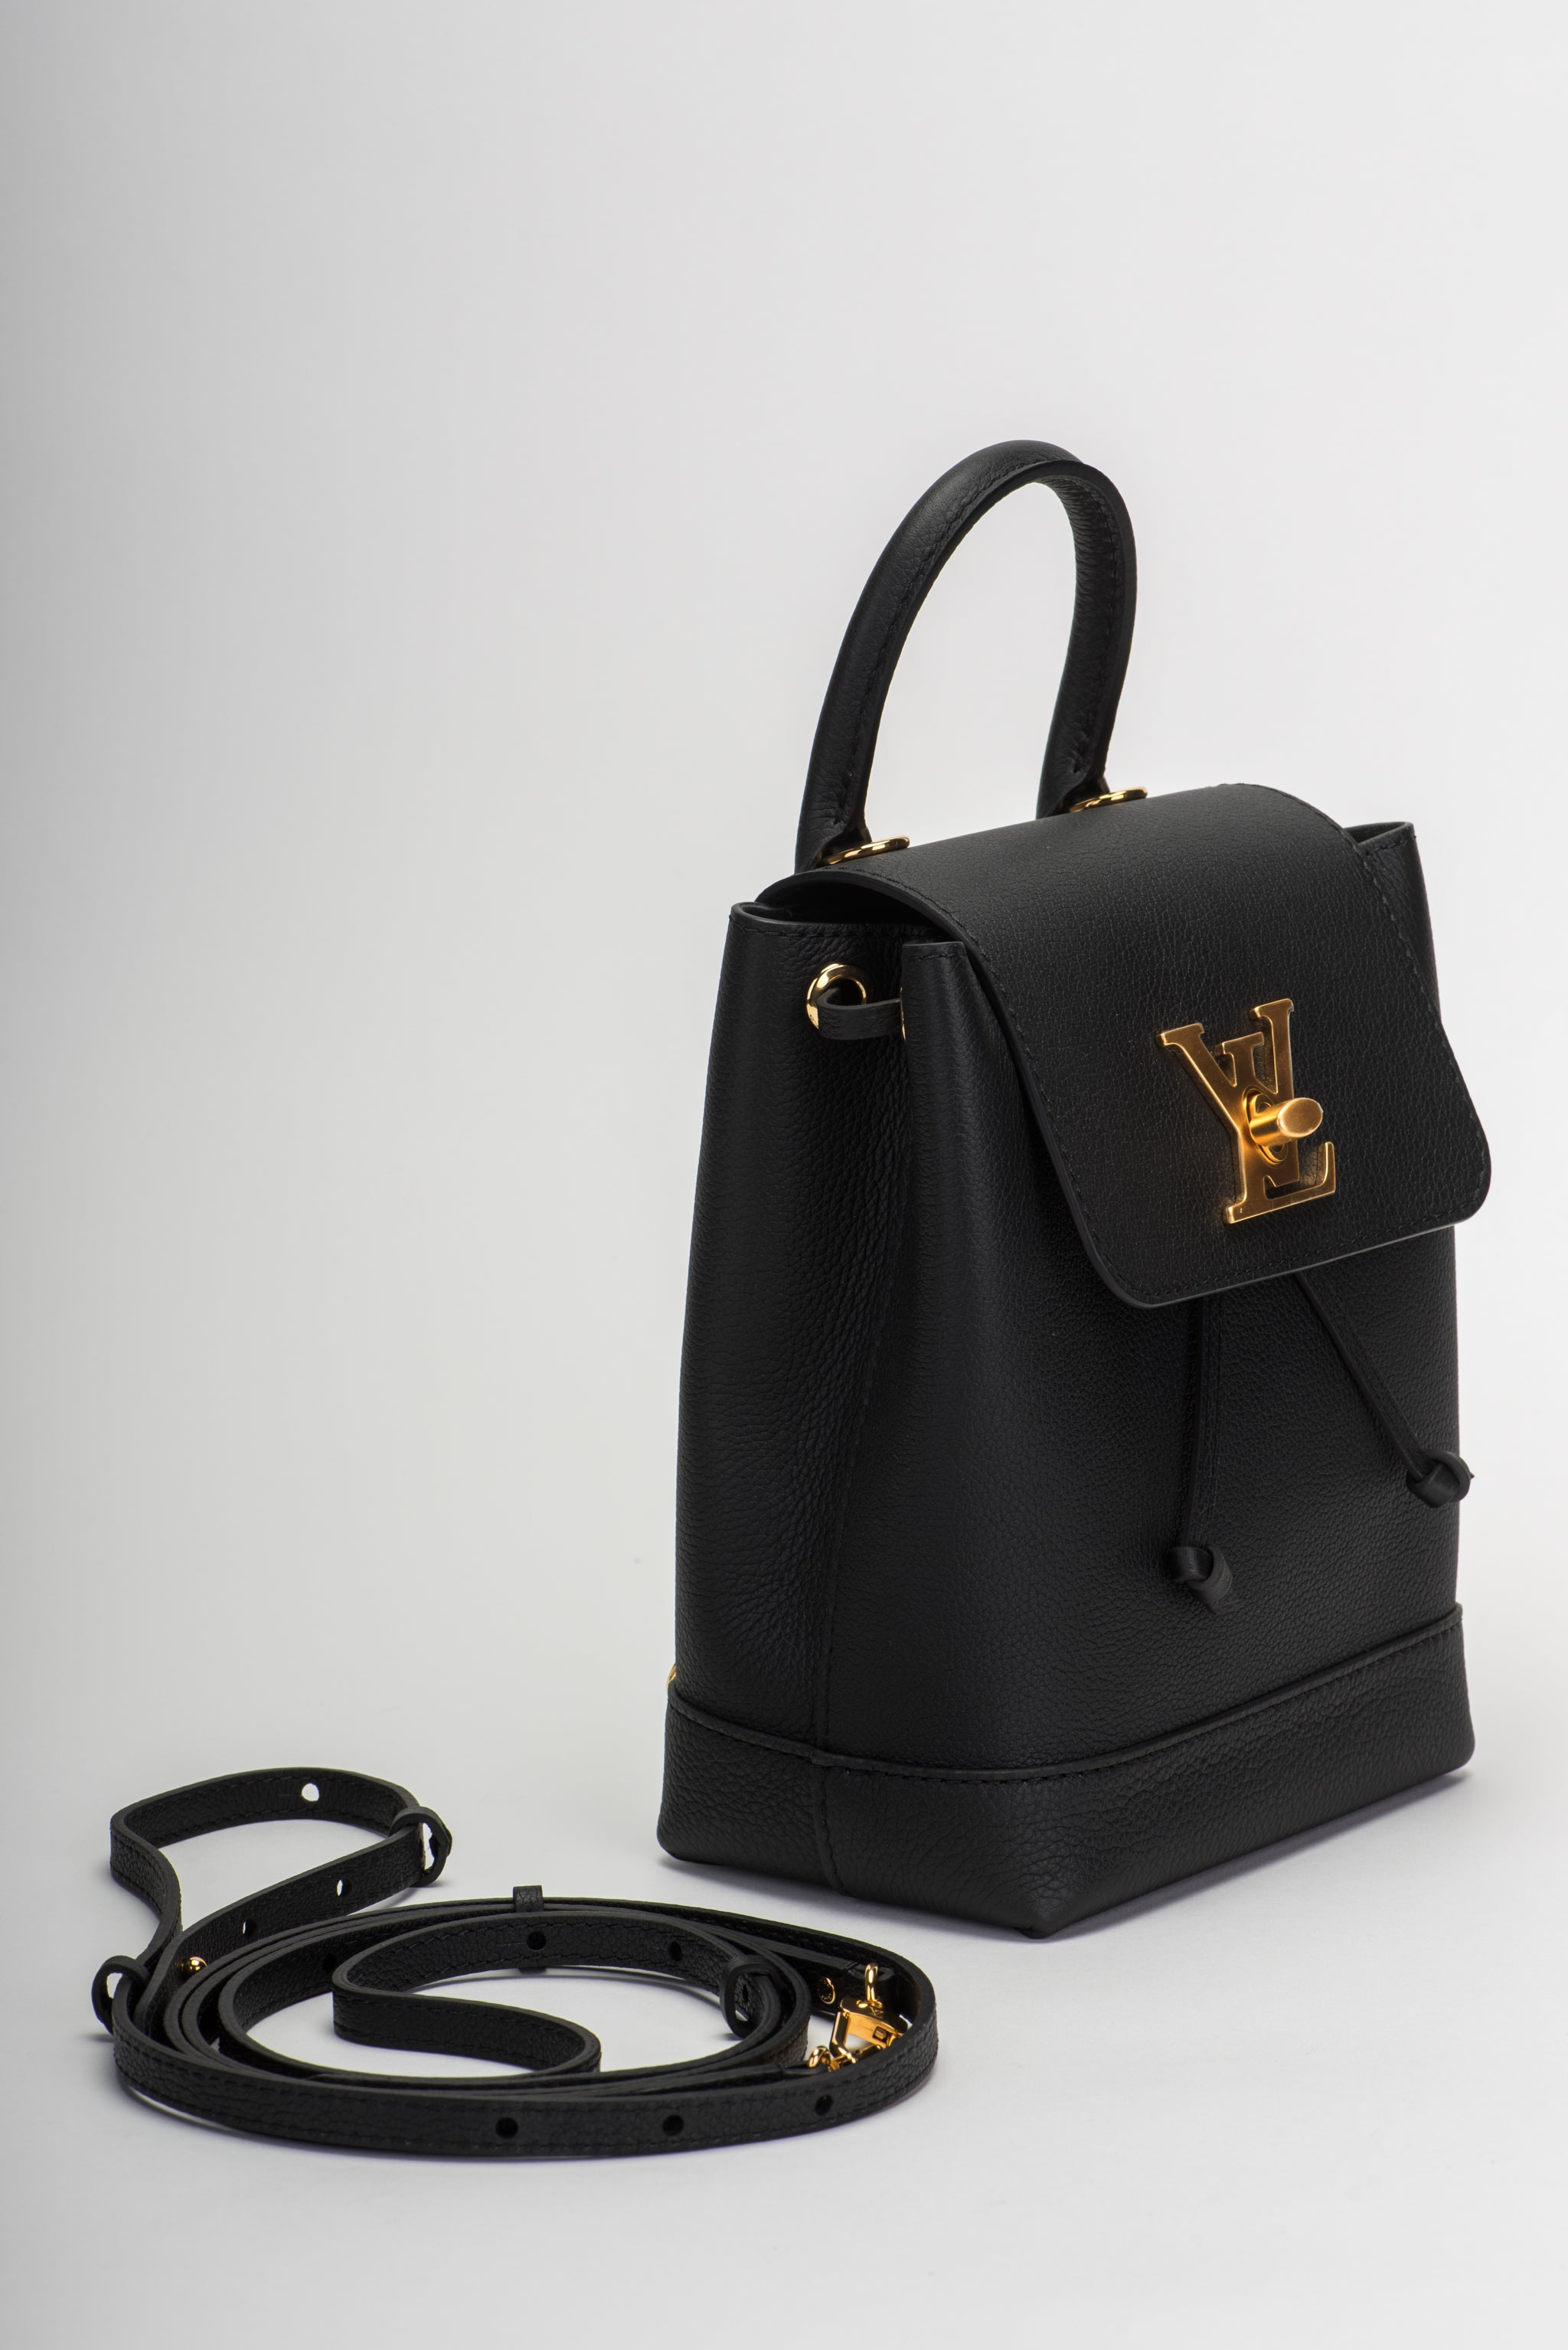 7b6156b11abe Louis Vuitton Sold Out New Black Lockme Backpack For Sale at 1stdibs